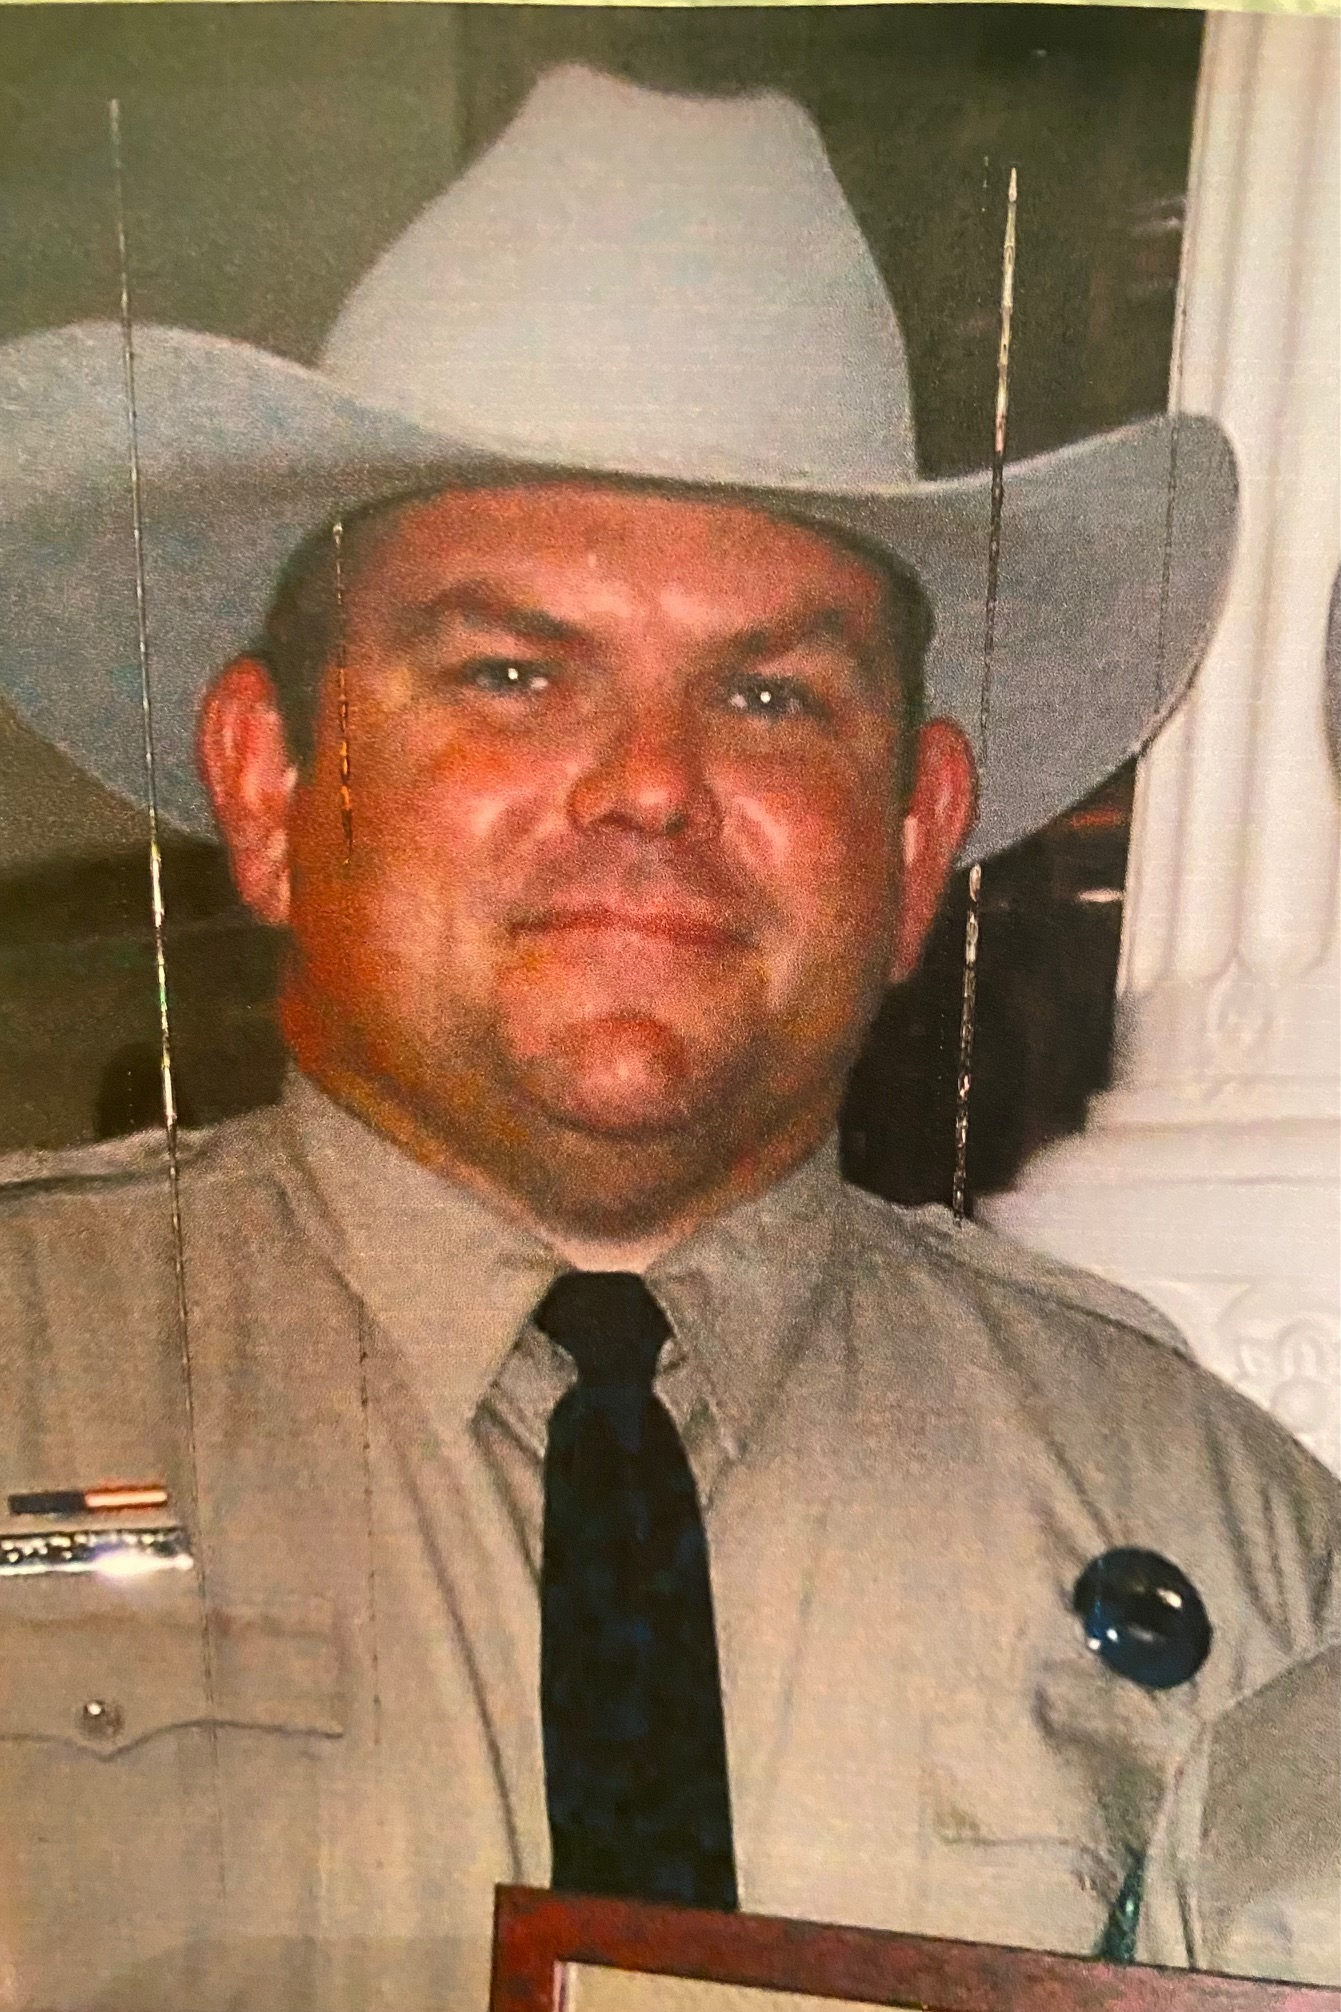 Sergeant Christopher Ray Wilson   Texas Parks and Wildlife Department - Law Enforcement Division, Texas